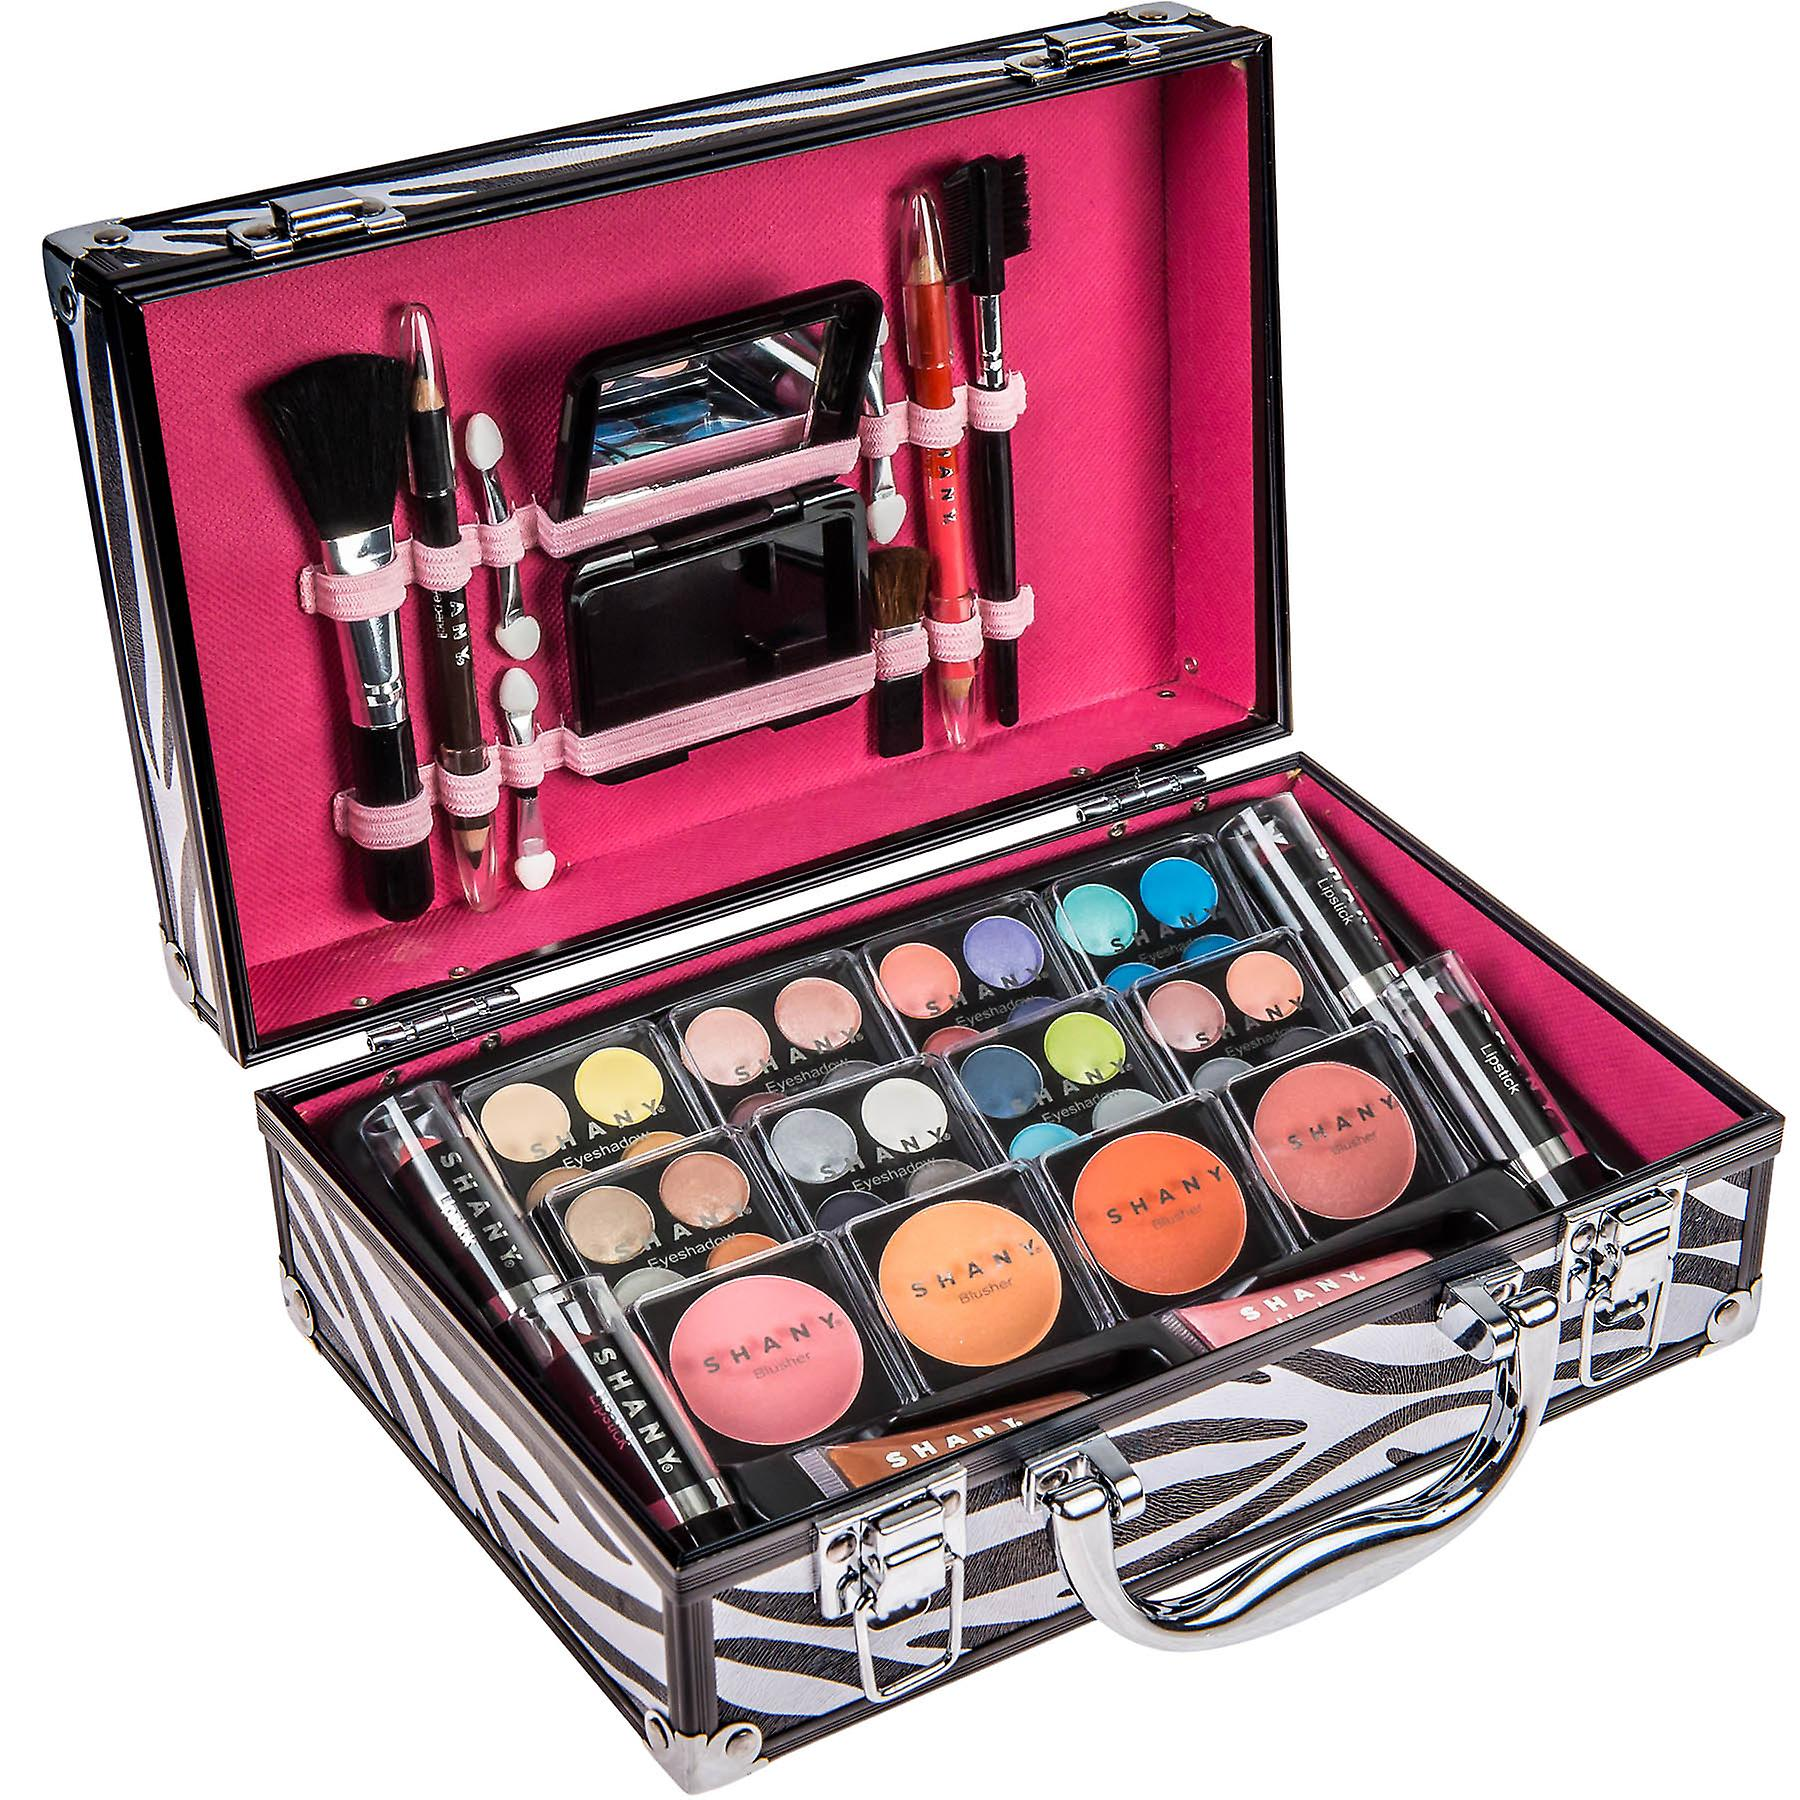 SHANY Carry All Makeup Train Case with Pro Makeup, Reusable Aluminum Case